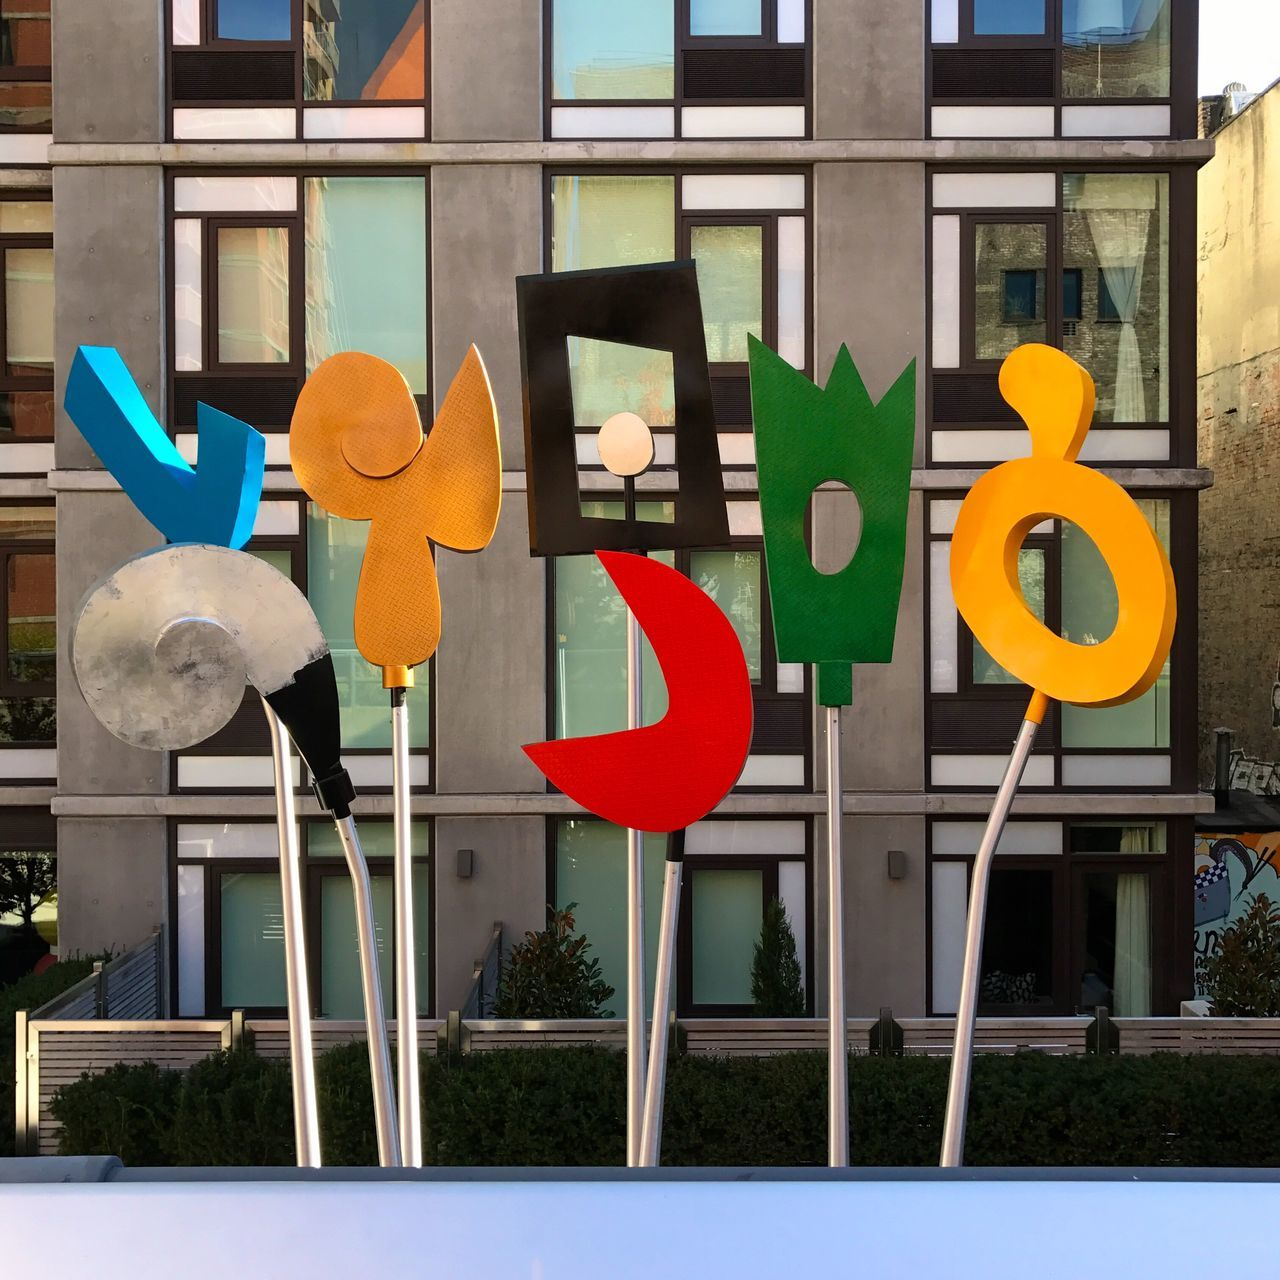 No People Day Building Exterior Communication Architecture Outdoors City Road Sign Close-up EyeEm Best Shots New York New York City New York ❤ Travel Multi Colored High Line Park High Line Manhattan Colors Colorful Colour Of Life Art ArtWork